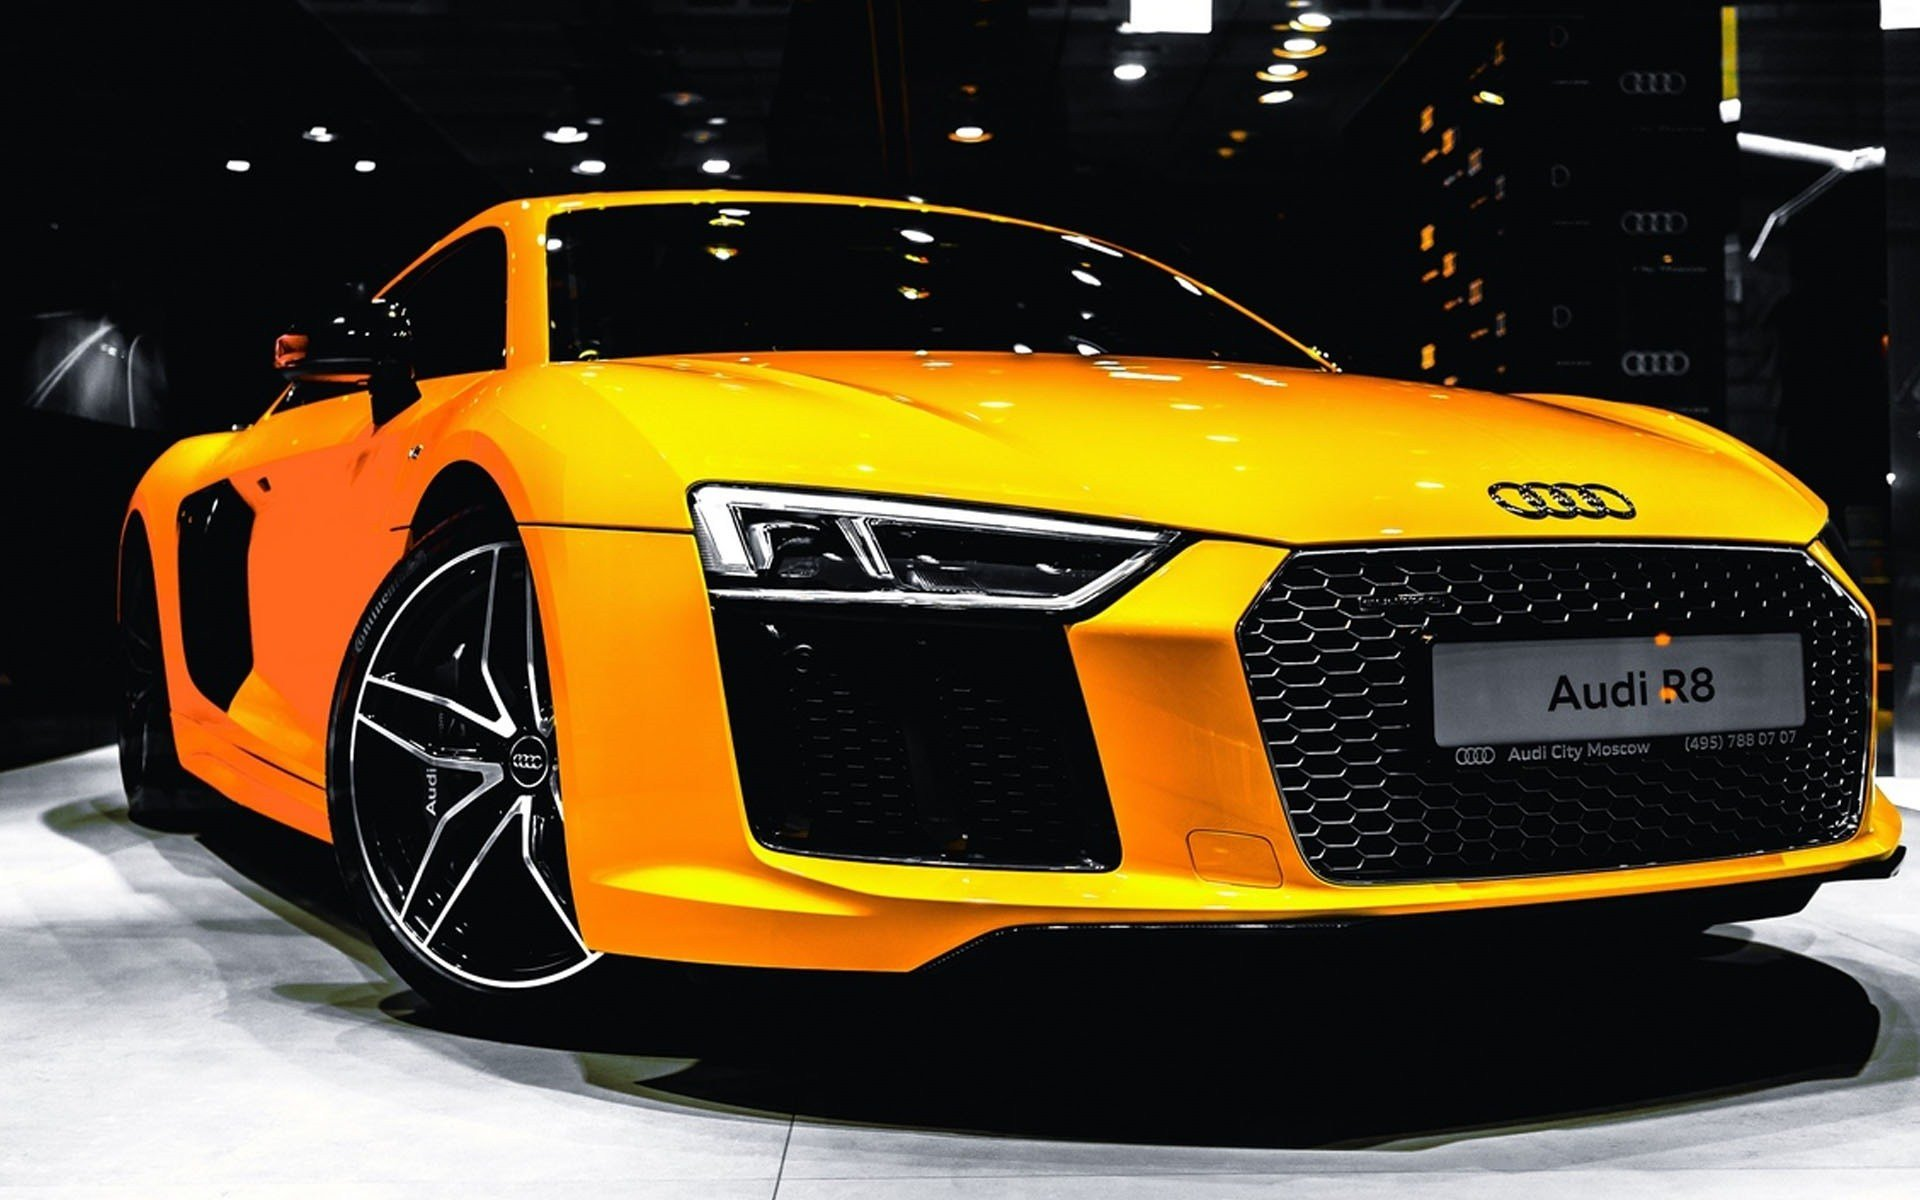 Latest Audi Car Images Hd Wallpaper Hd Latest Wallpapers Free Download